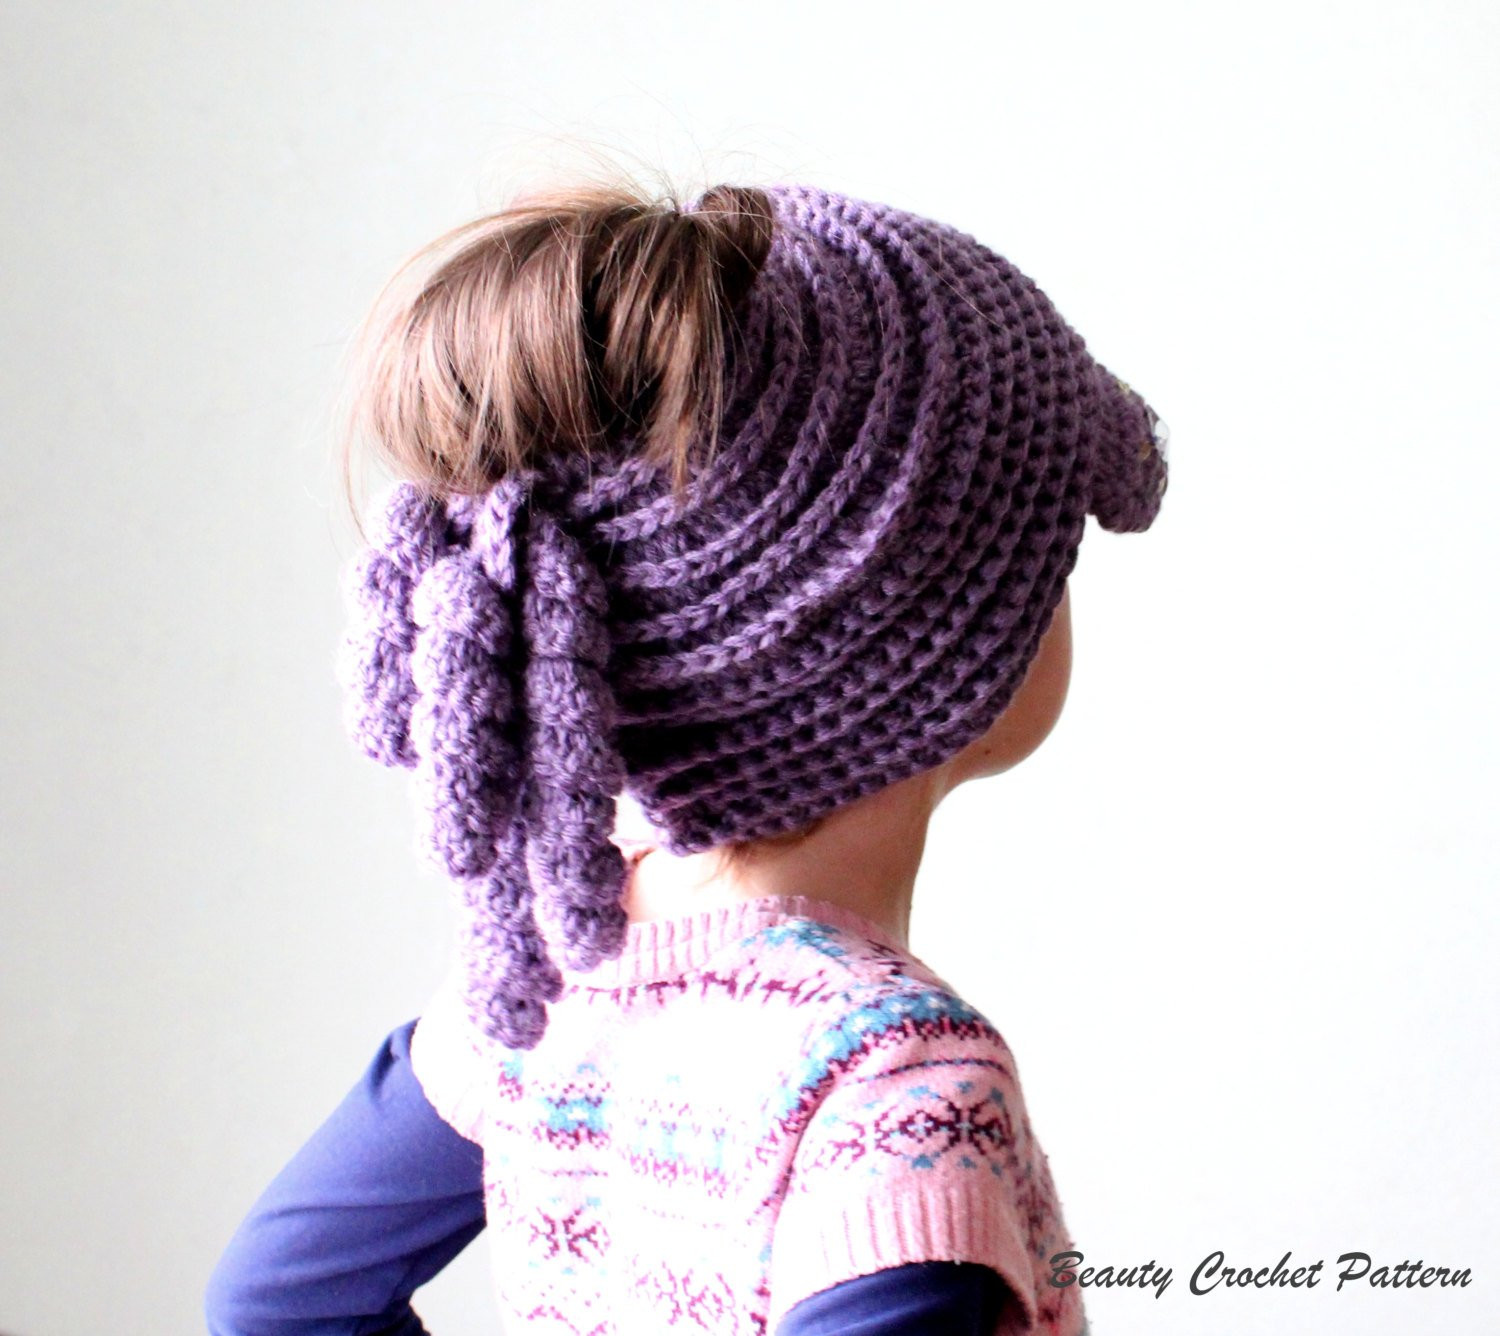 Messy Bun Hat Lovely Messy Bun Hat Crochet Pattern Messy Bun Hat Messy Bun Beanie Of Awesome 43 Pics Messy Bun Hat